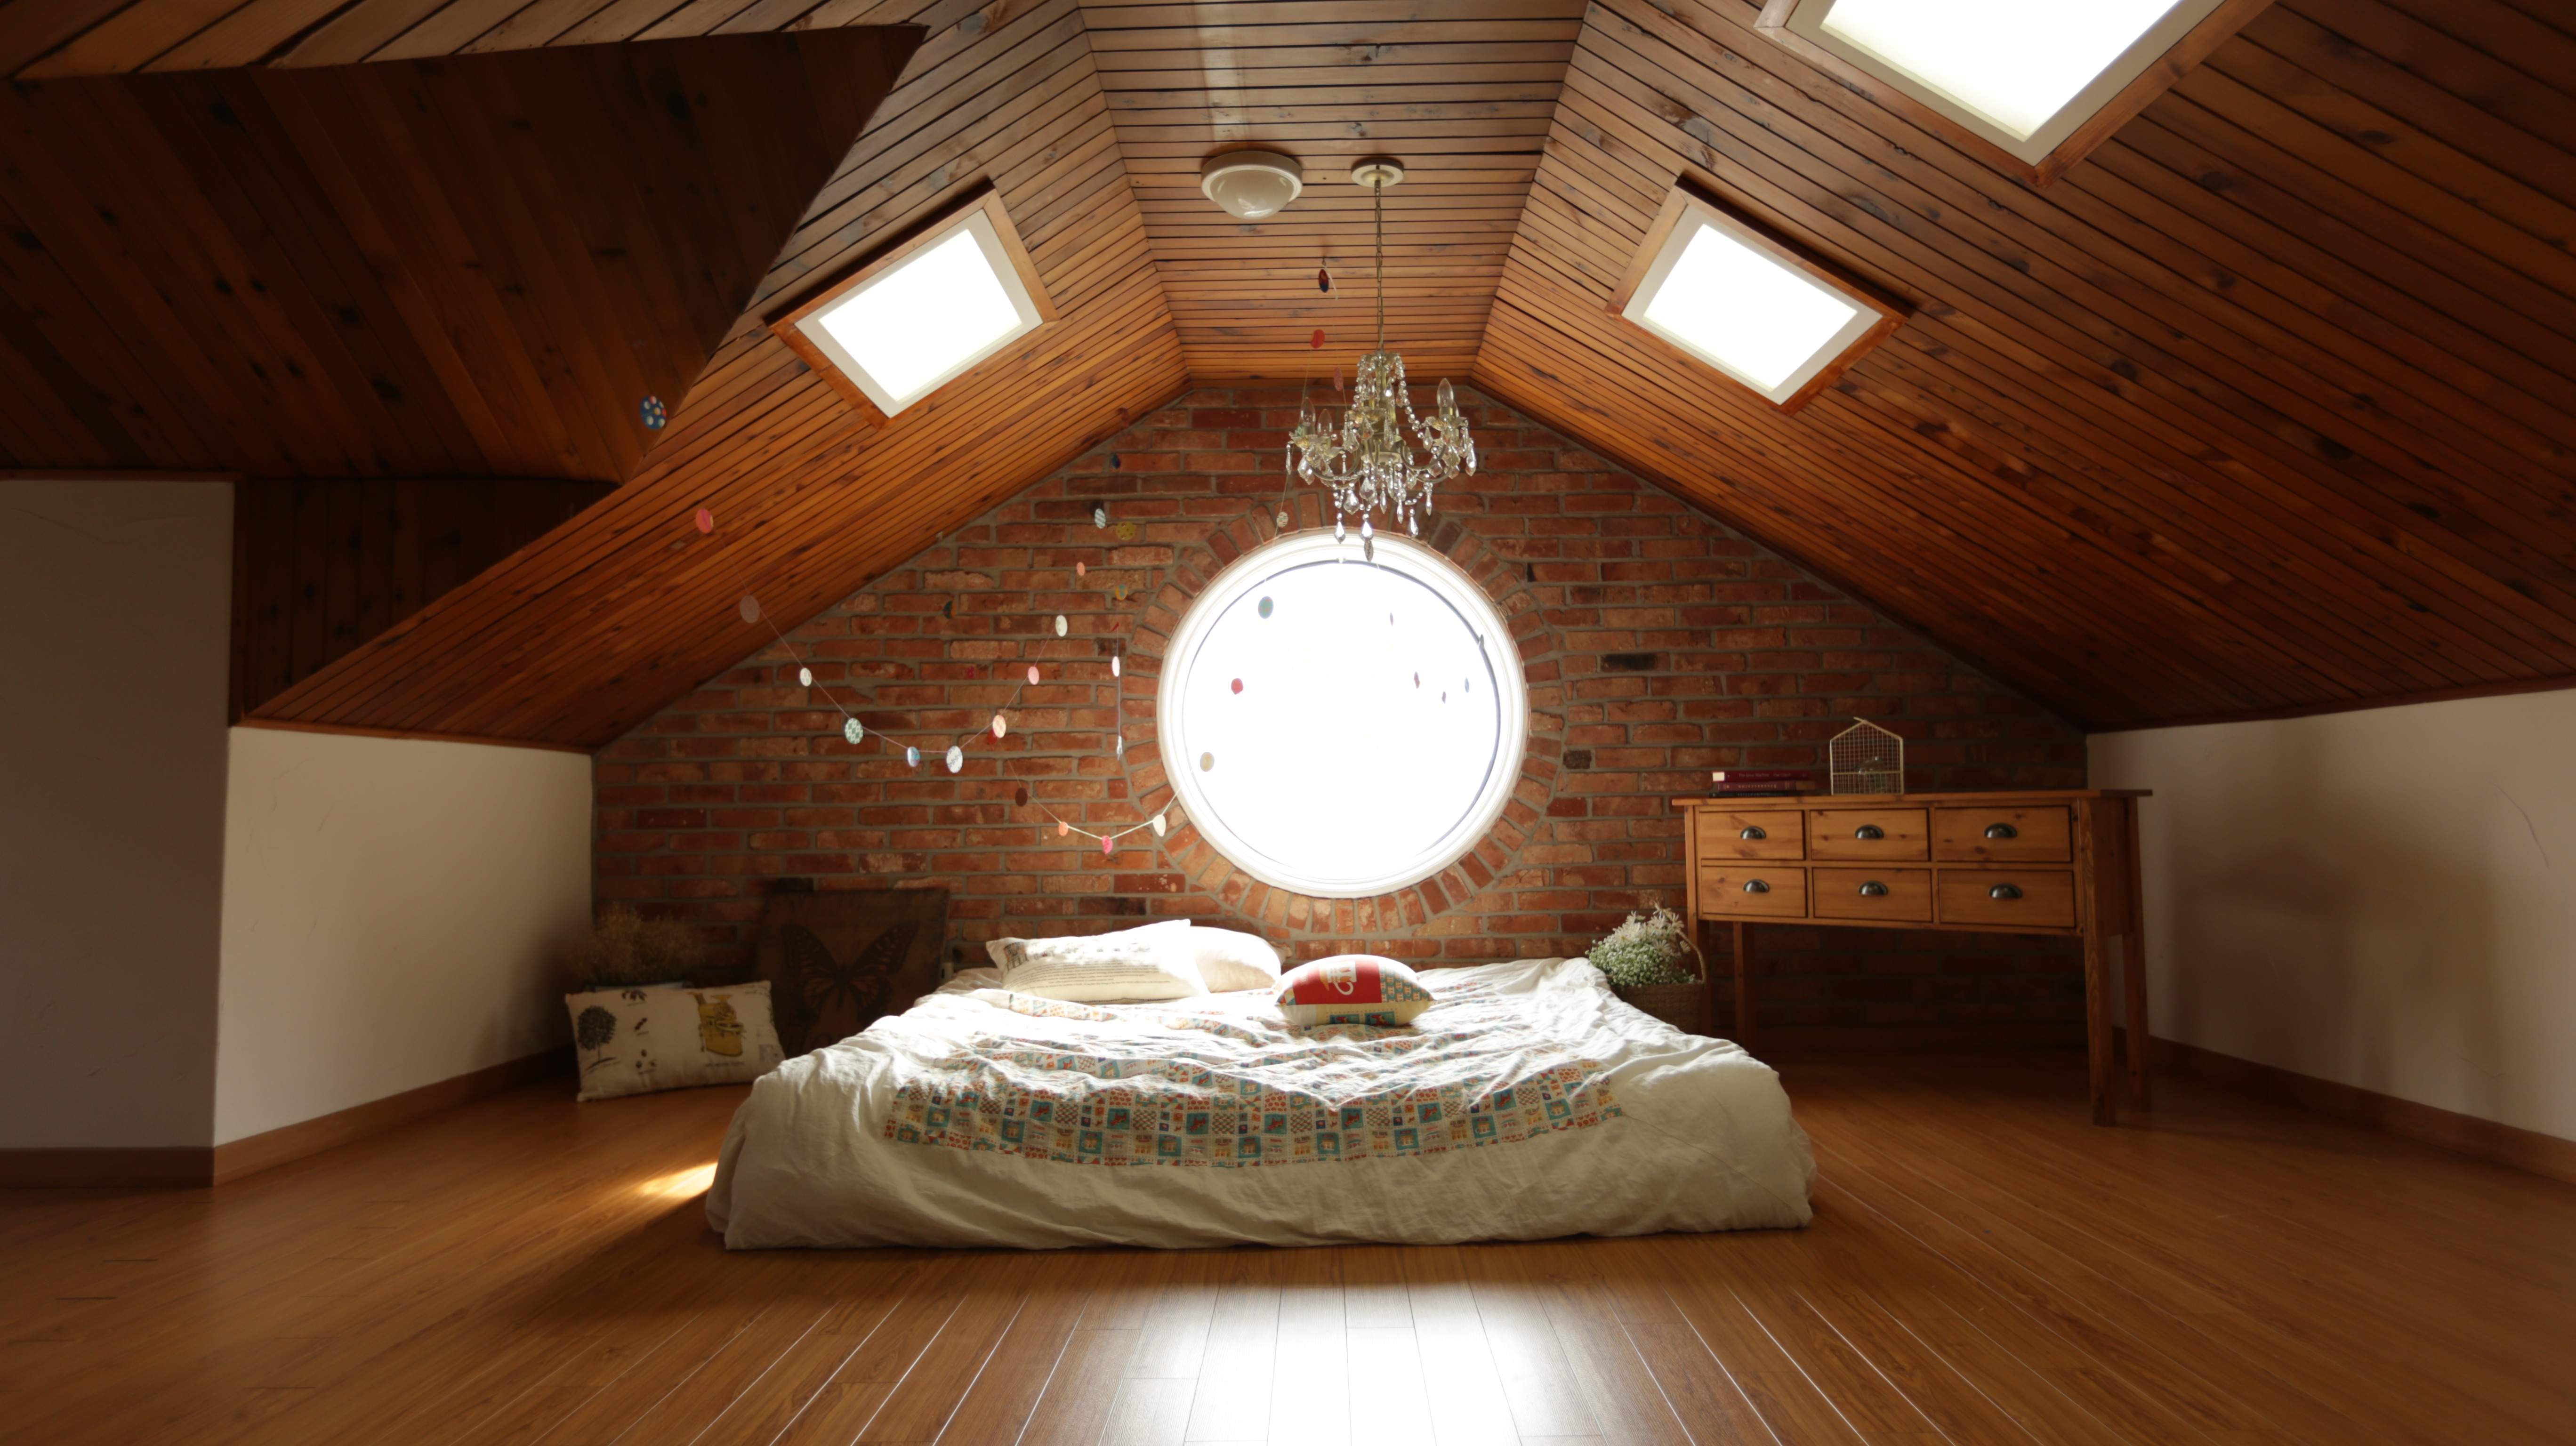 The Surprising Insights Healthcare Recruiters Can Learn from Airbnb